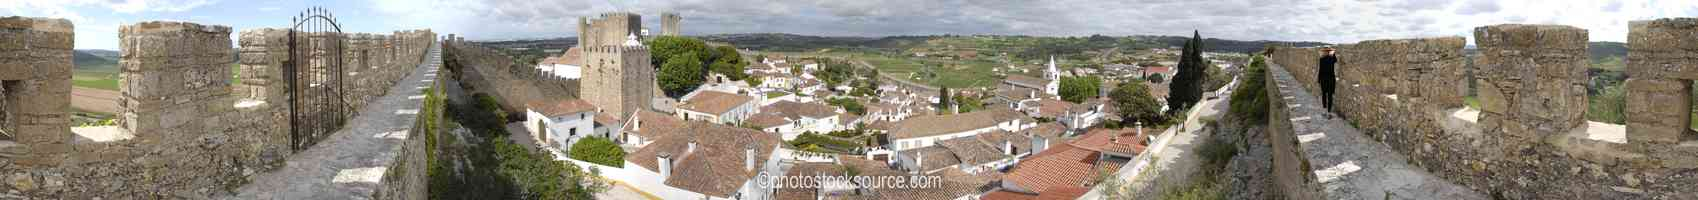 Photo of From Obidos North Wall